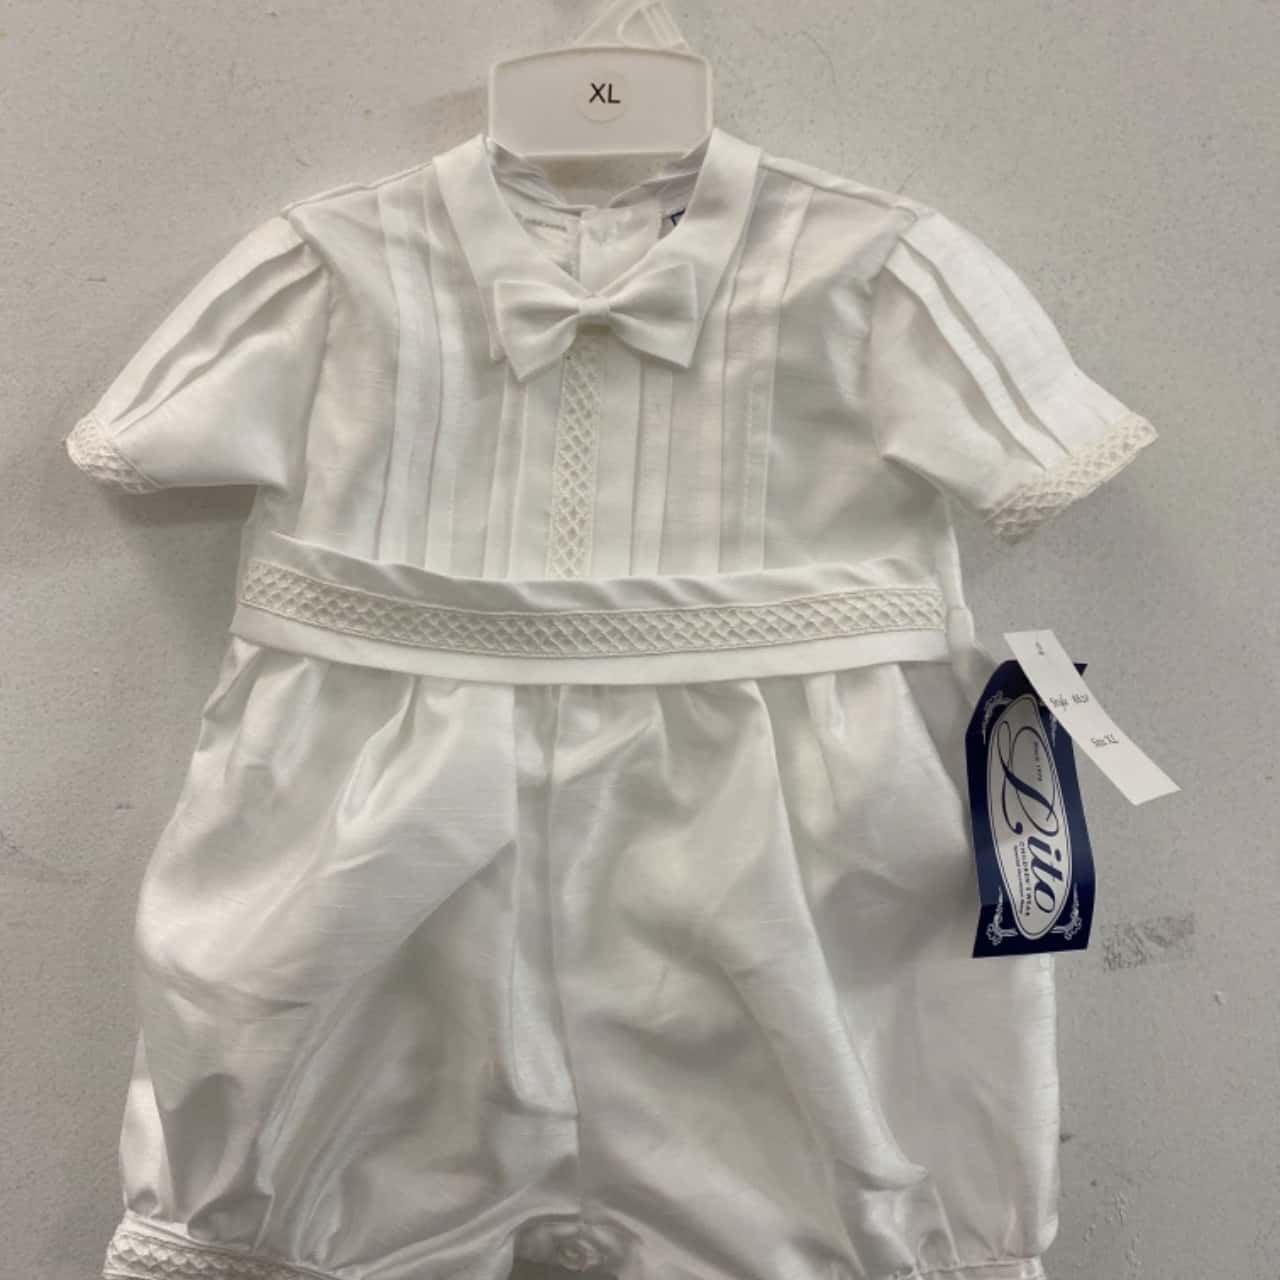 Kids Select Baby Outfit